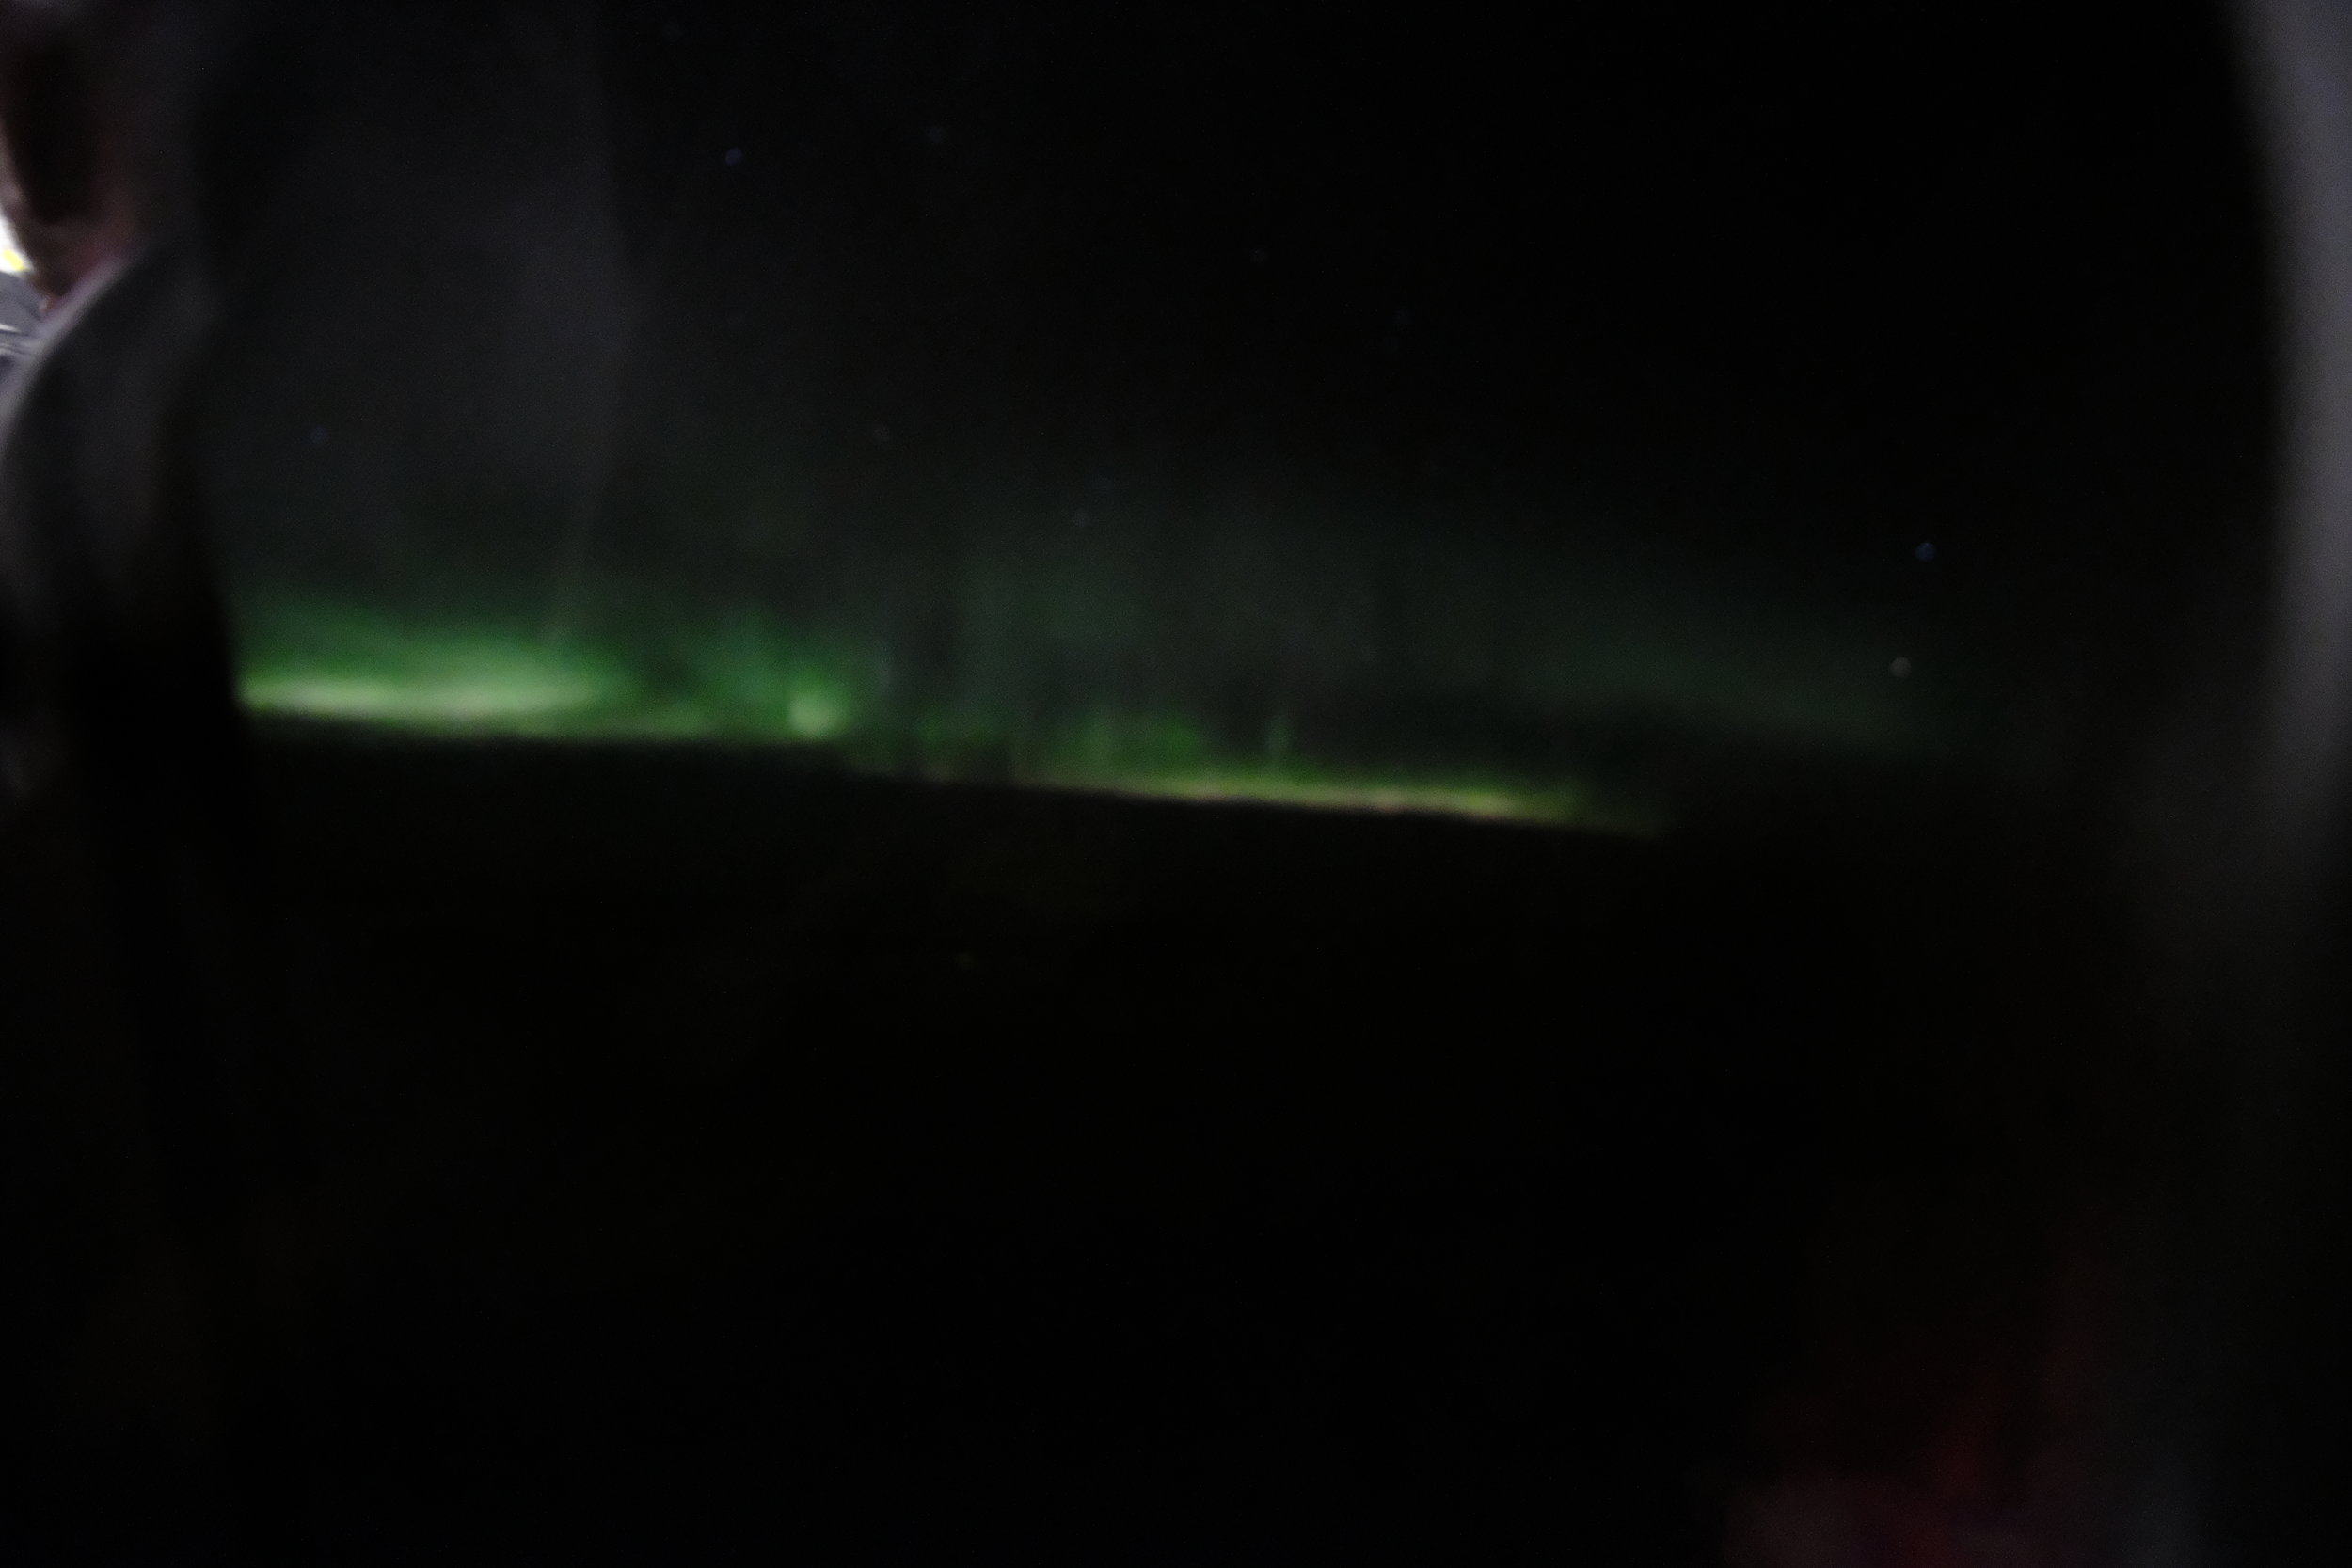 When we saw the green dancing streaks of light, I was happy as a child.